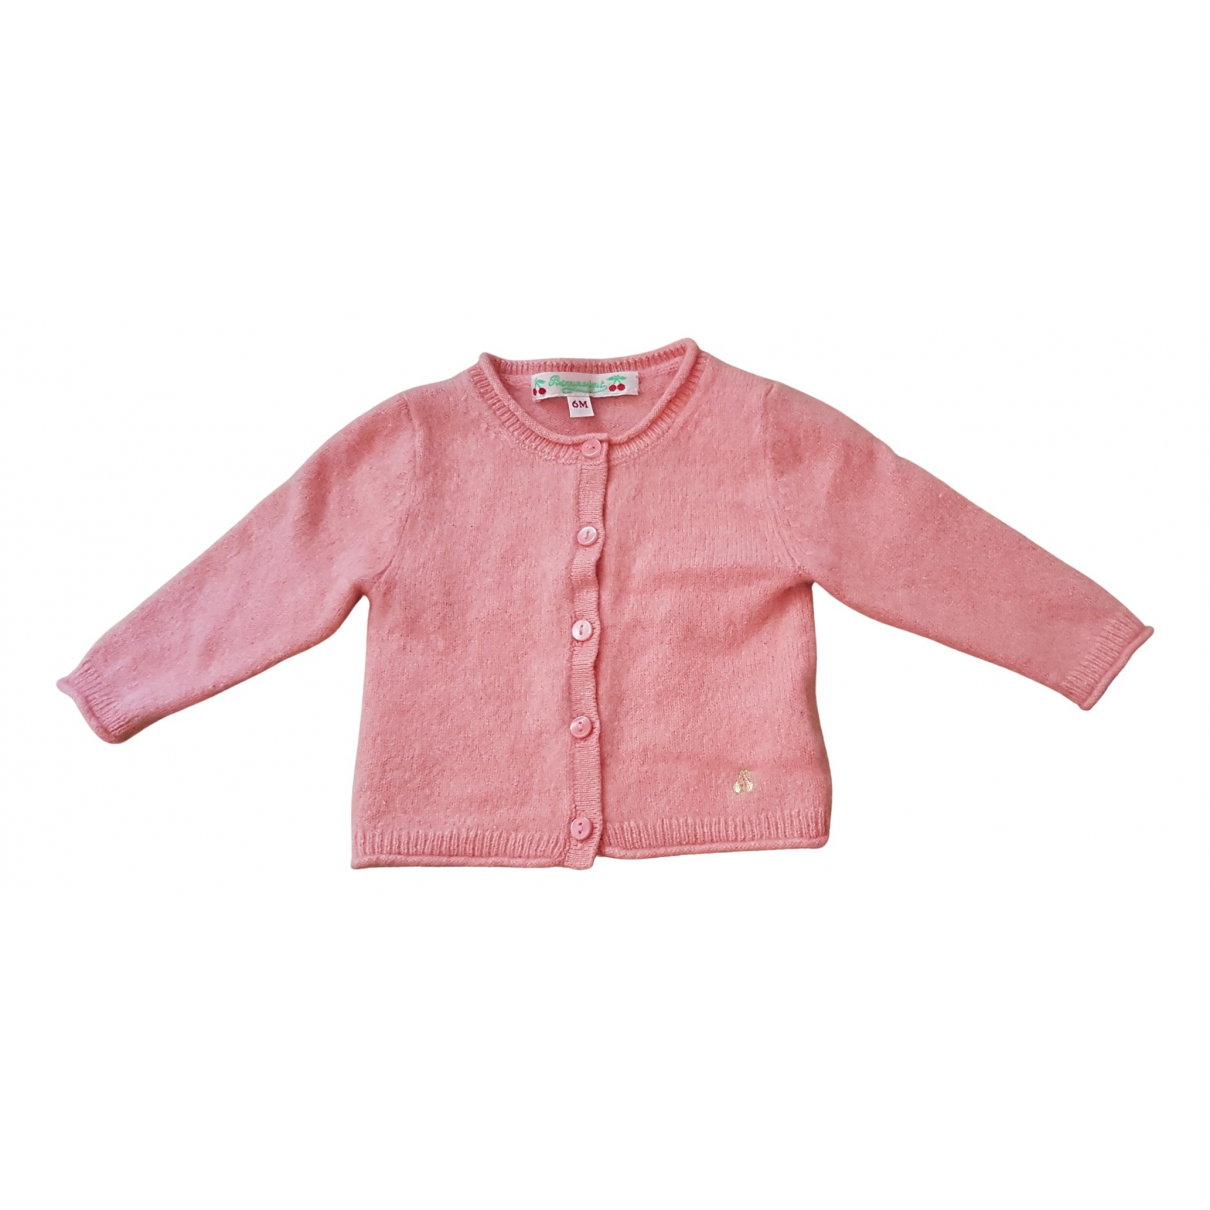 Bonpoint \N Pink Cashmere Knitwear for Kids 6 months - up to 67cm FR